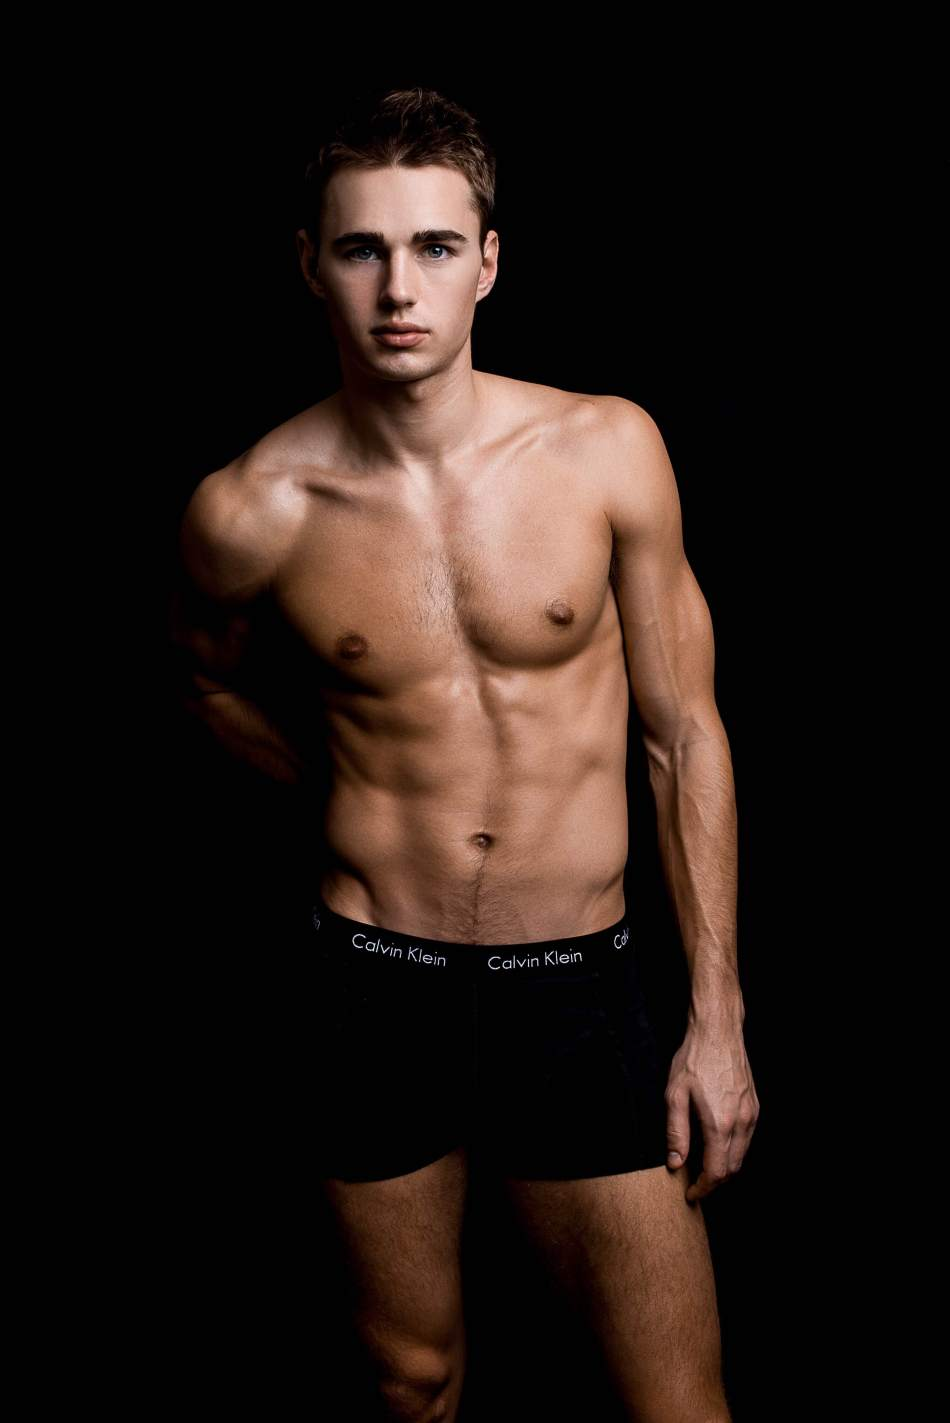 Over the course of the past six months few models have had quite the immediate success as Evan Harman.